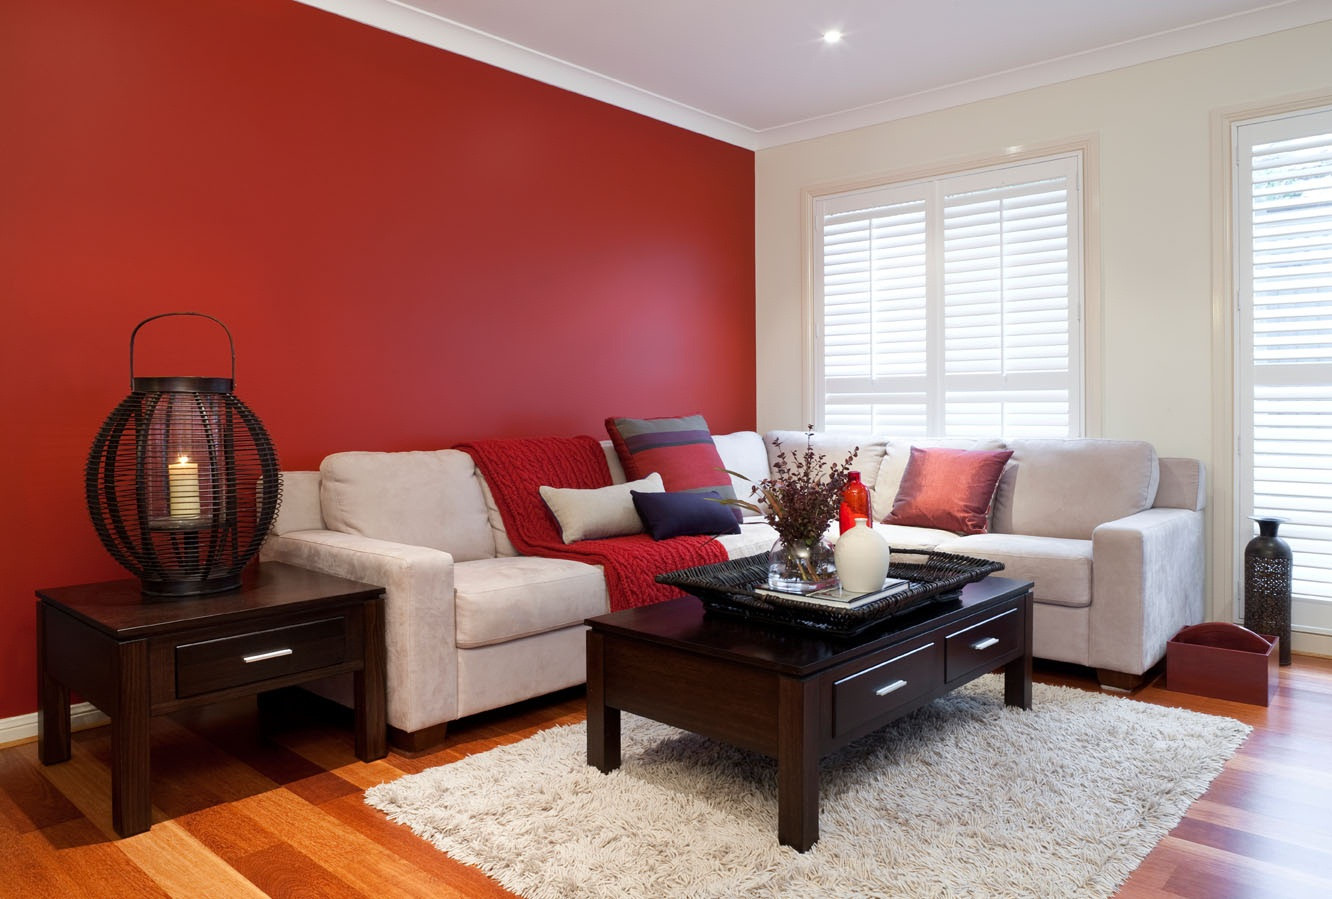 Best ideas about Living Room Color Ideas . Save or Pin Blue Green Color bination Living Room Paint Color Ideas Now.